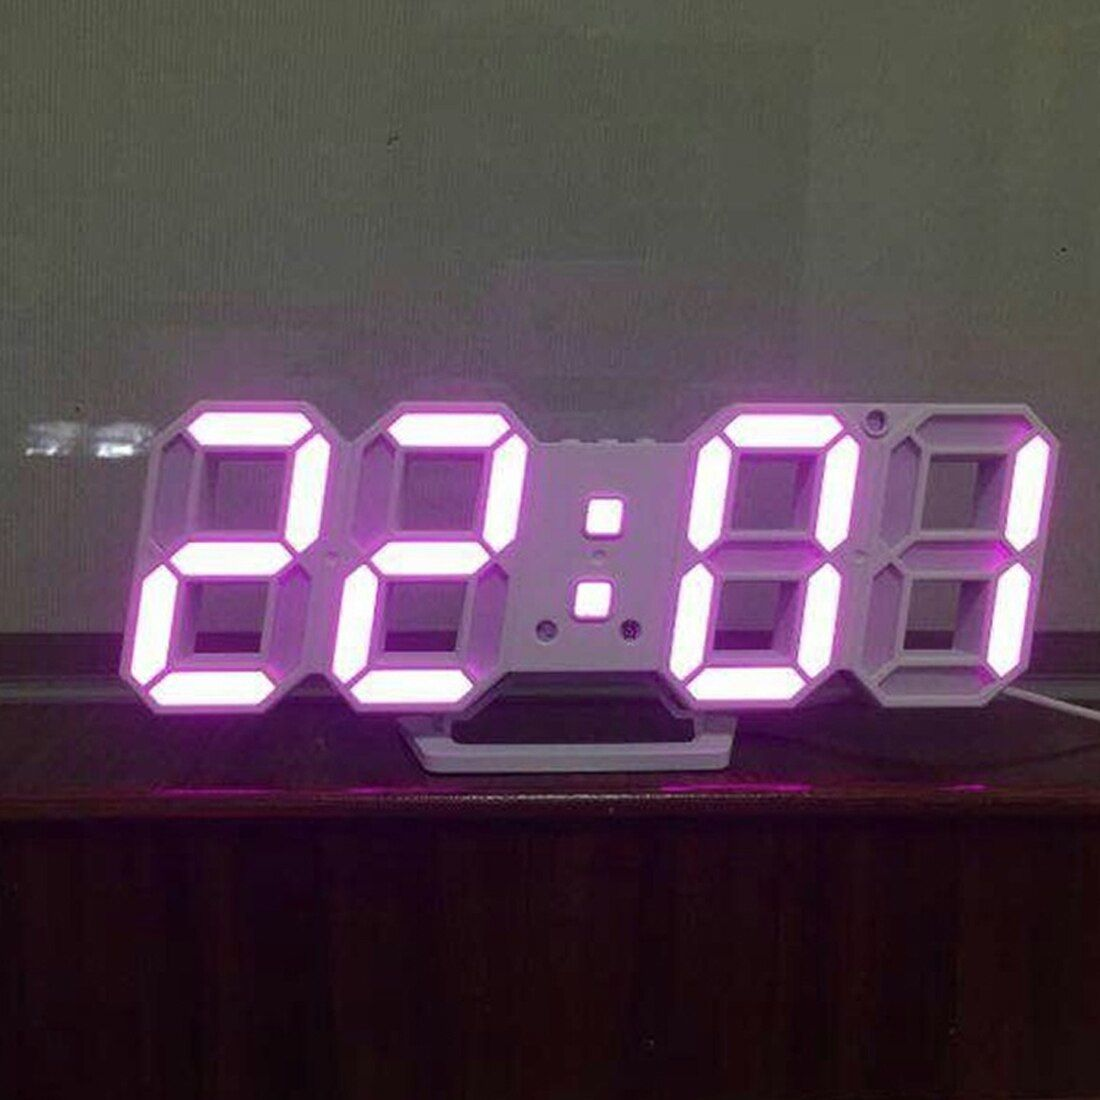 Pop Modern Wall Clock Digital Led Table Clock Watches 24 Or 12